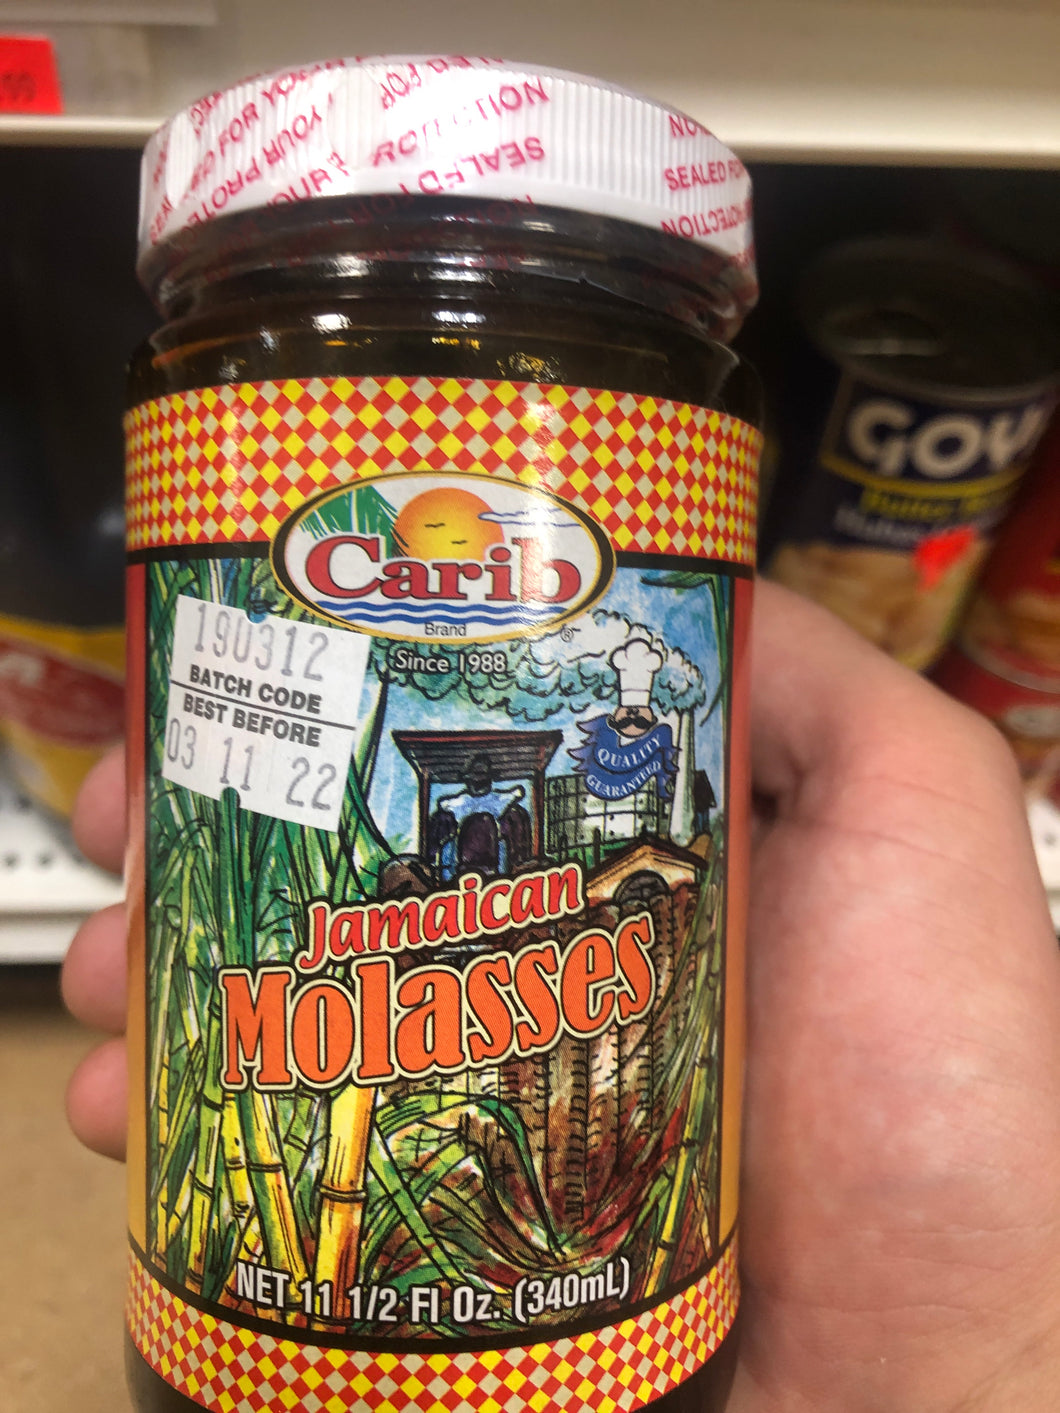 CARIB JAMAICAN MOLASSES